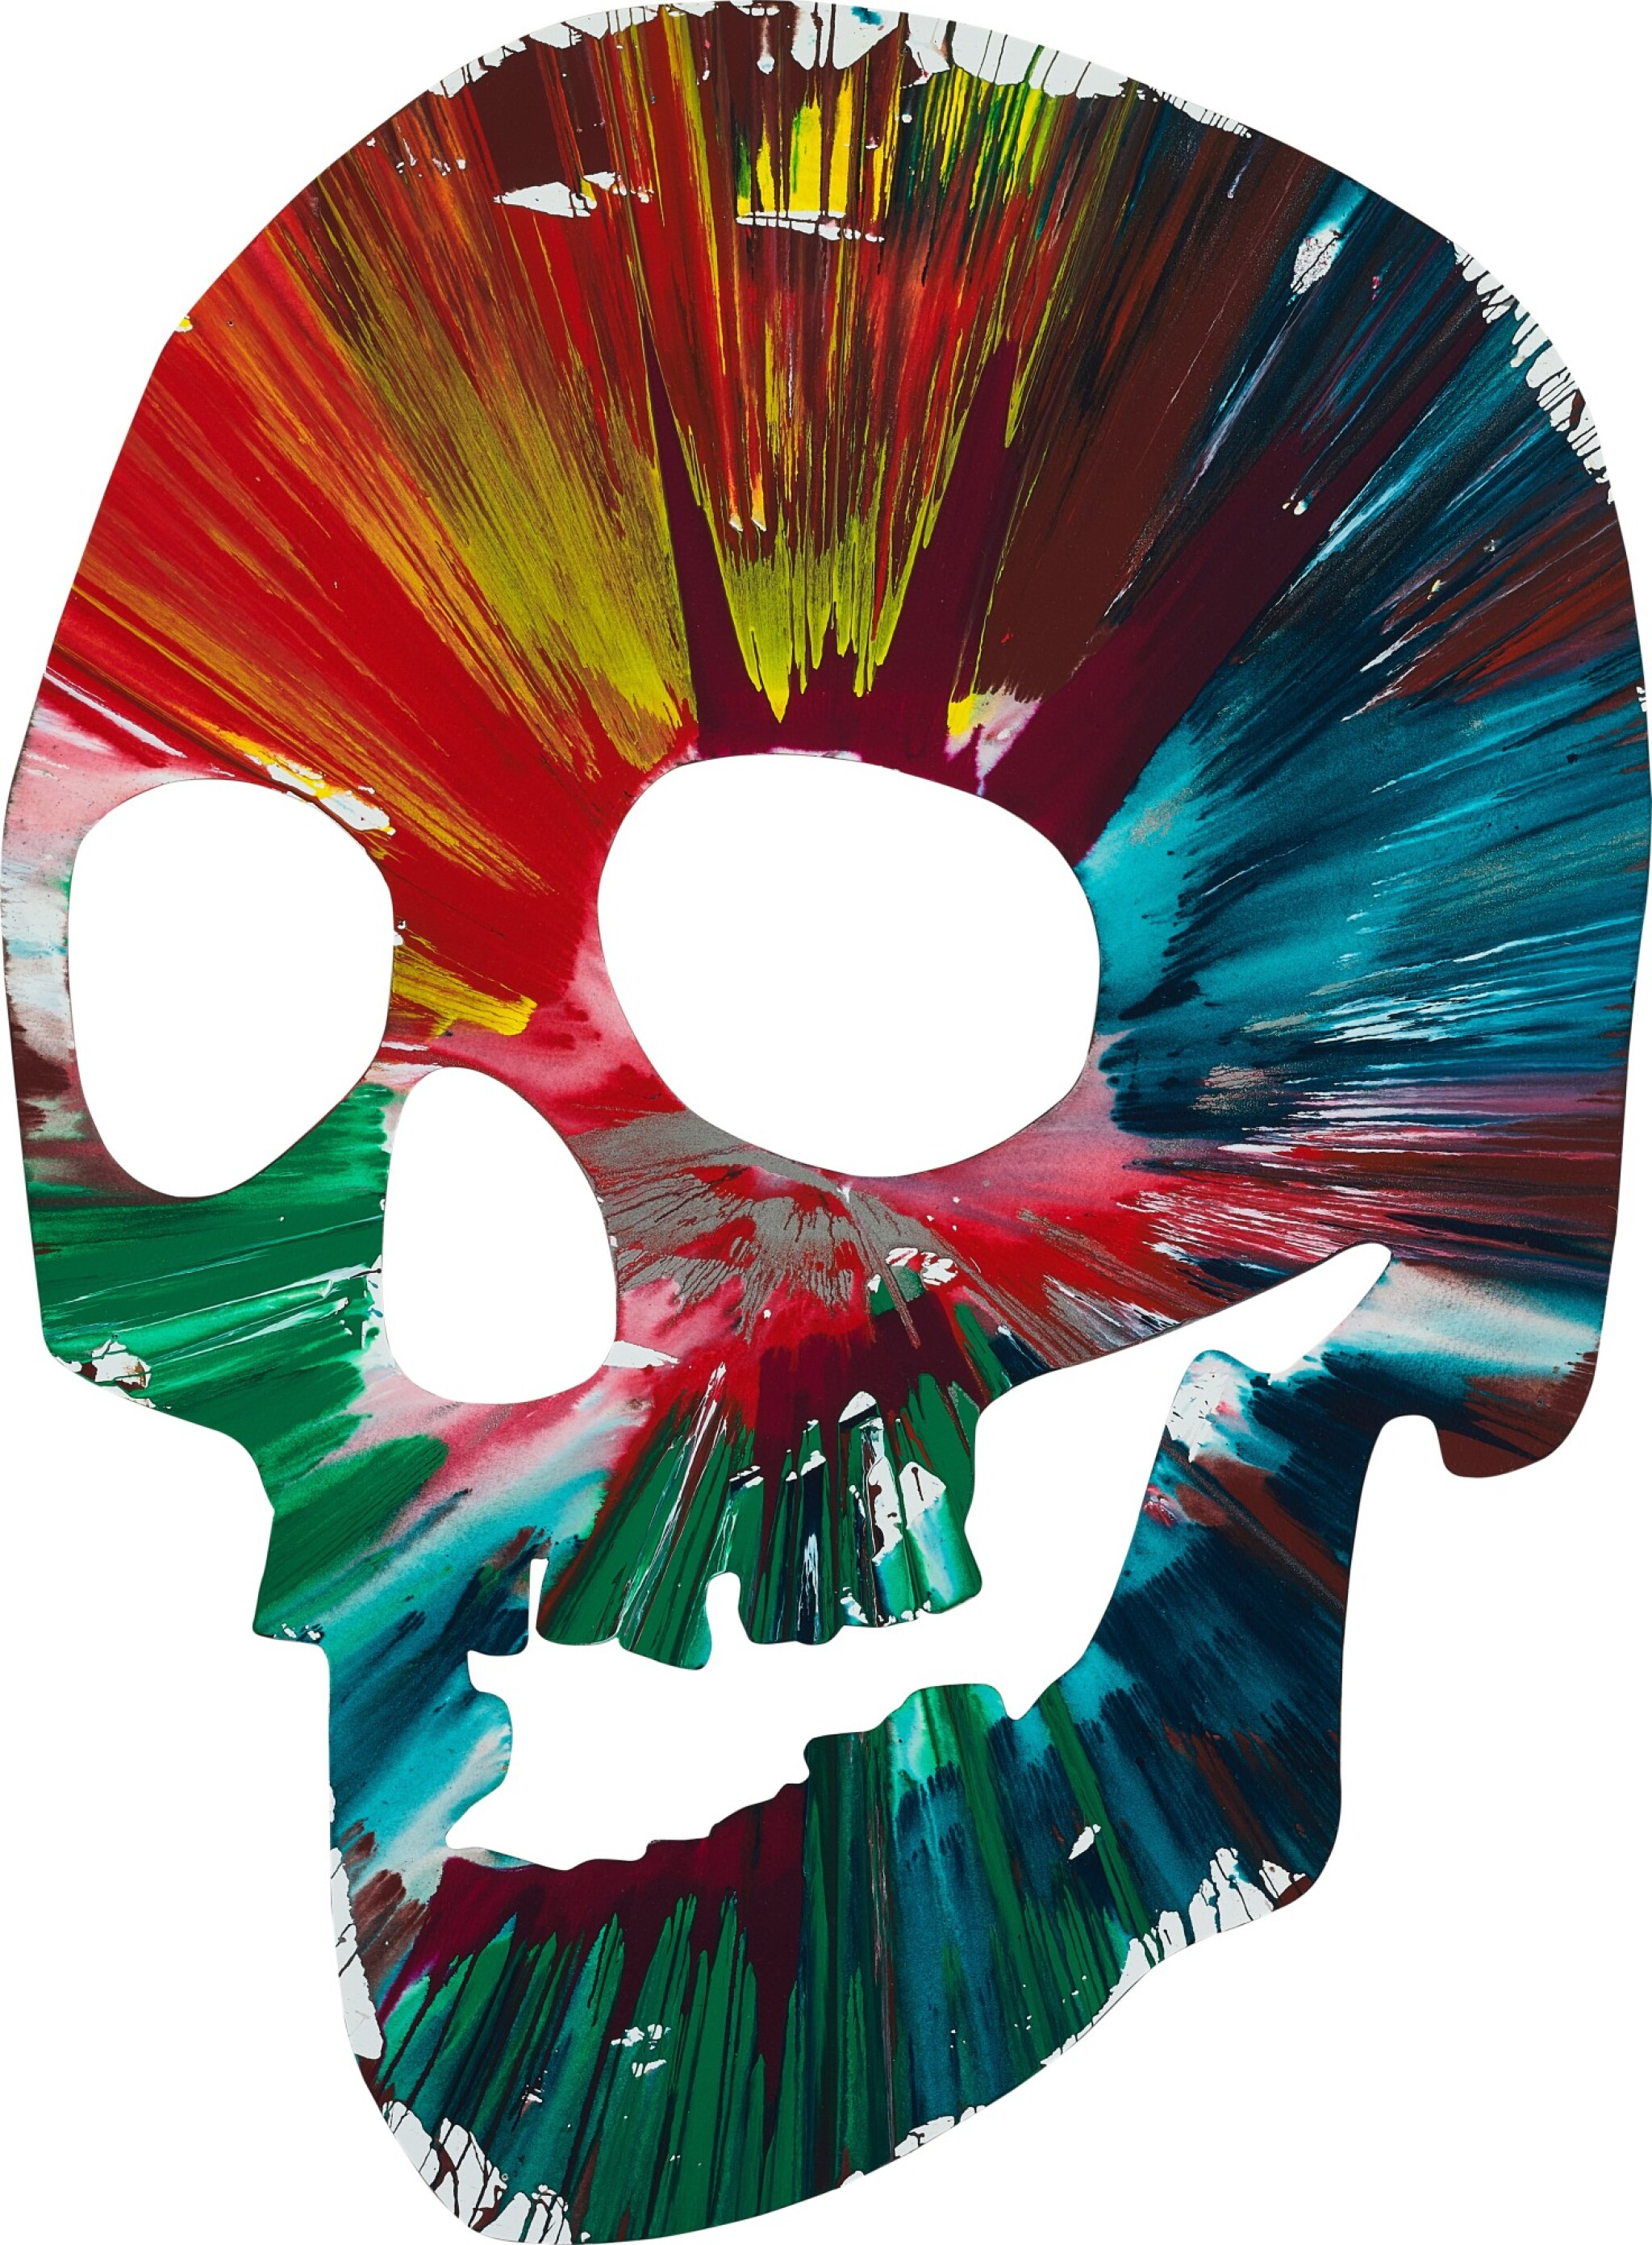 View full screen - View 1 of Lot 4. Untitled (Skull Spin Painting) |  無題(骷髏旋轉畫).